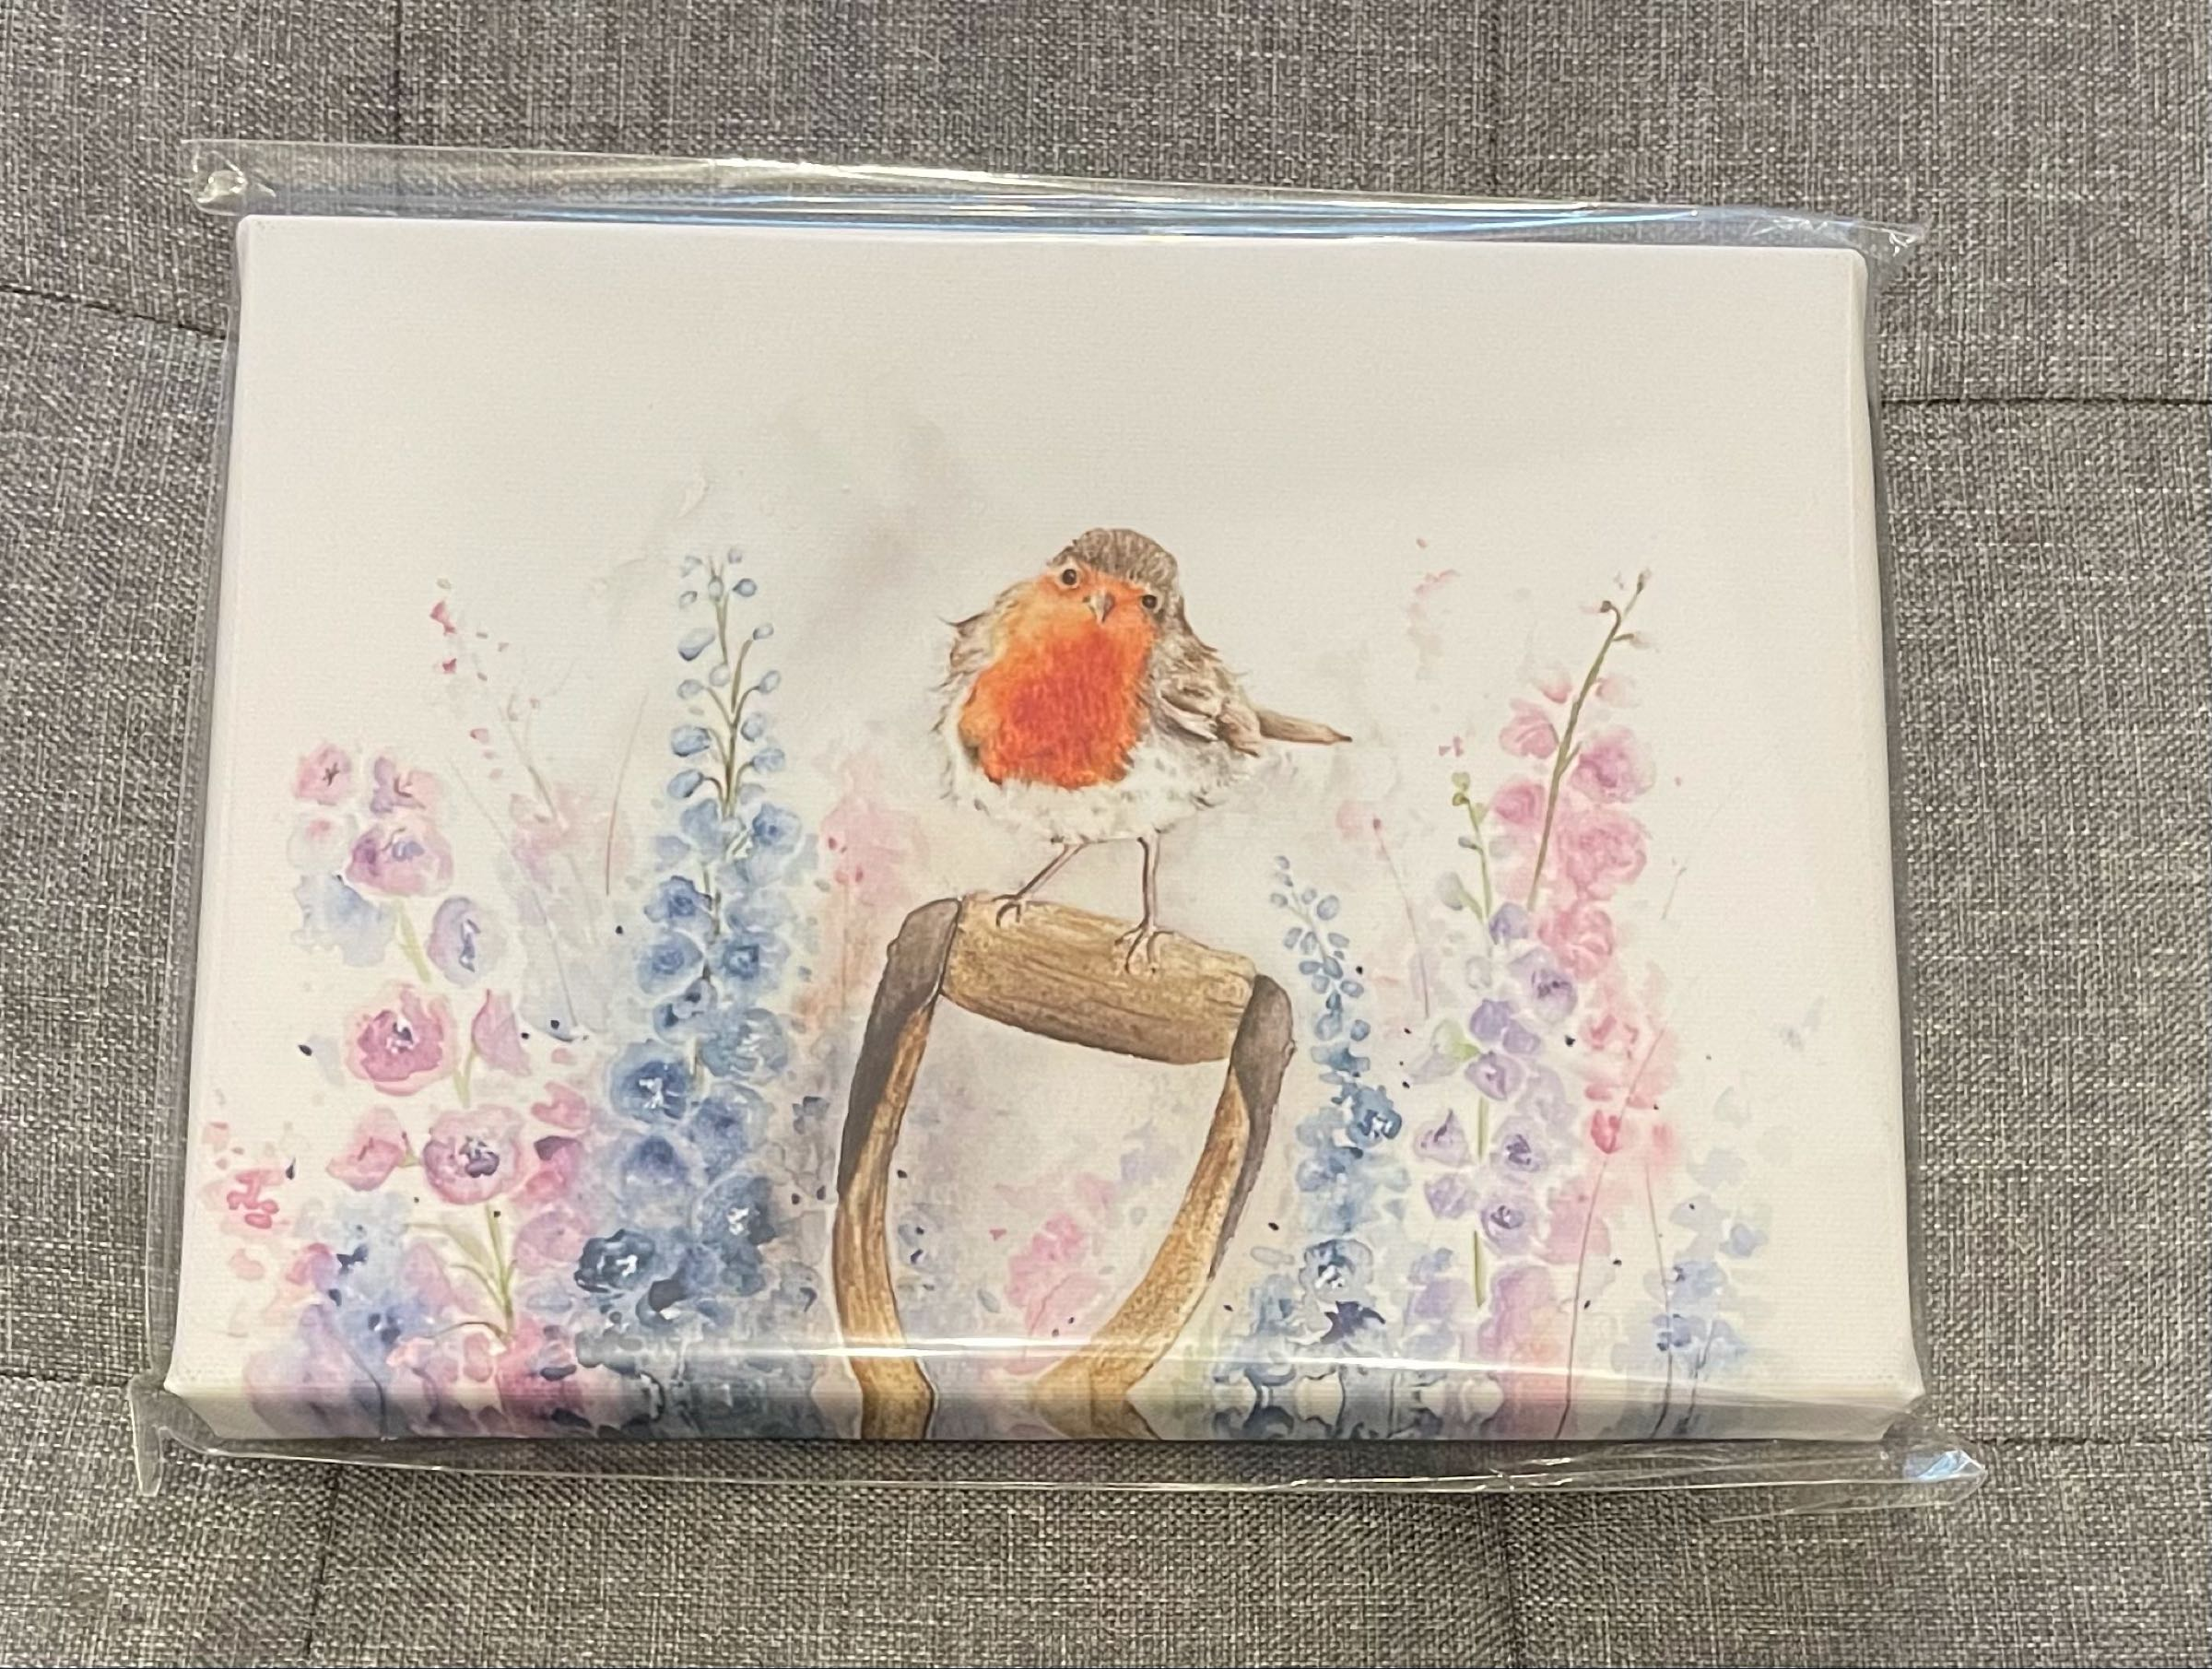 Rosie Robin Canvas by Sarah Reilly  15cmx21